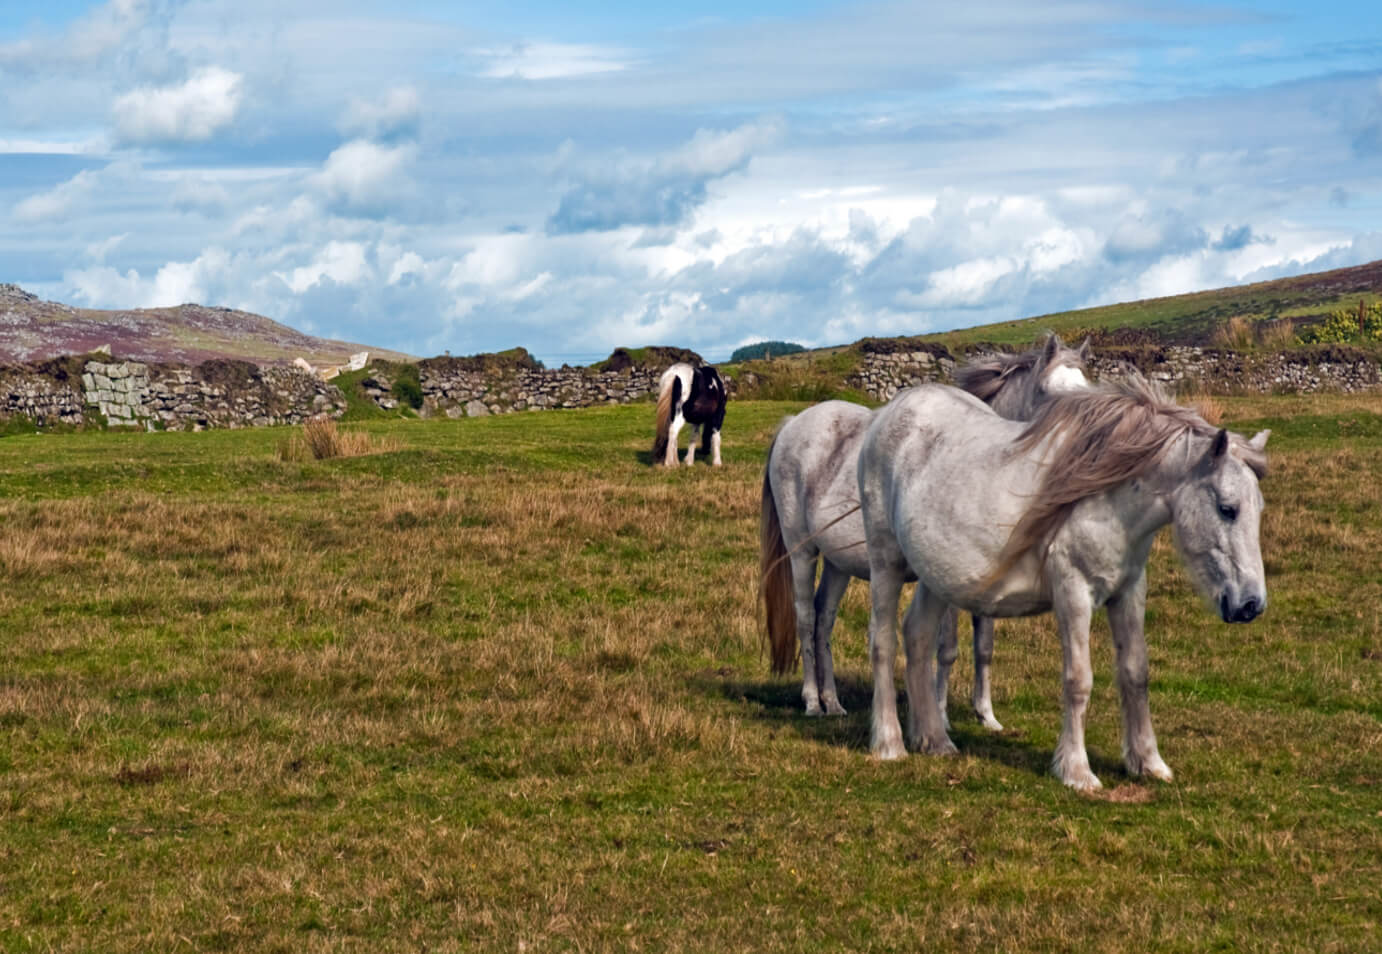 a_walk_on_bodmin_moor_cornwall_3_30_sept-_2010_-_flickr_-_phillipc